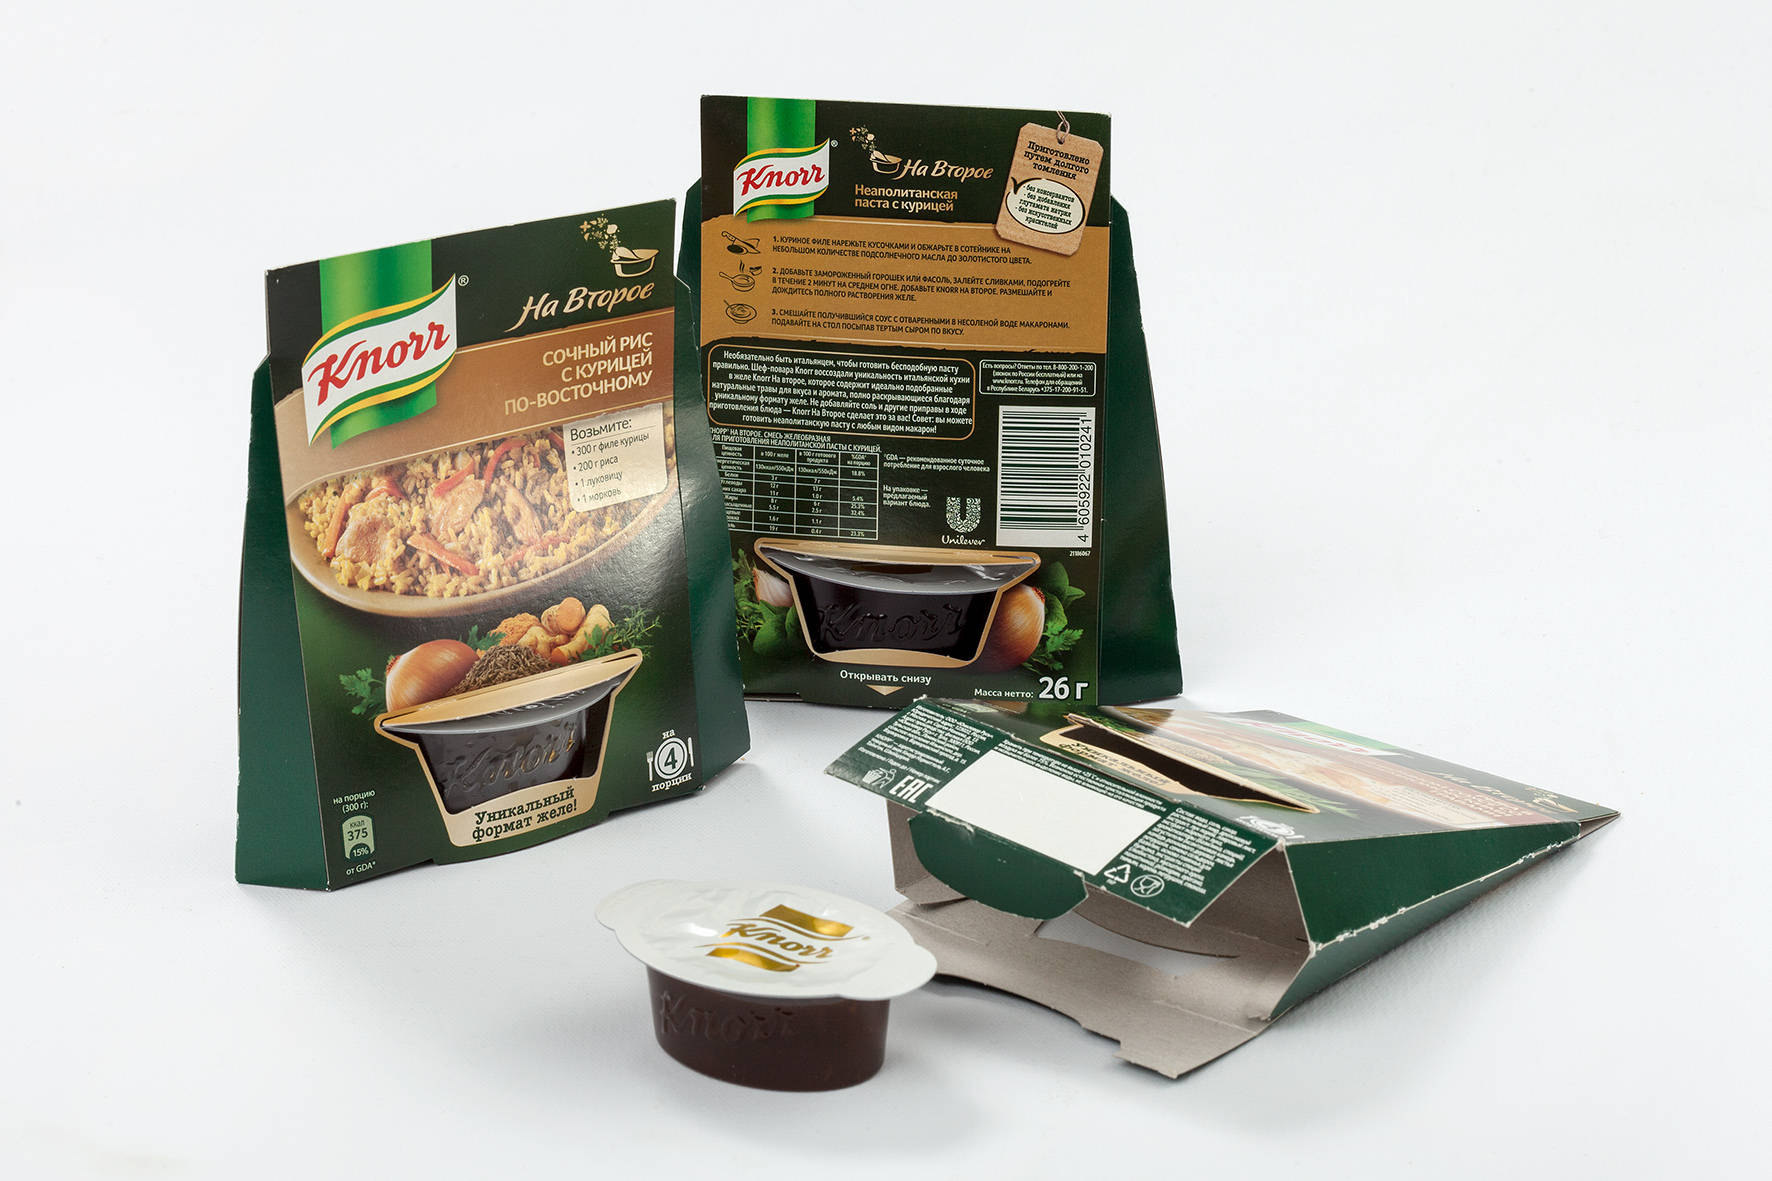 Knorr Main Course